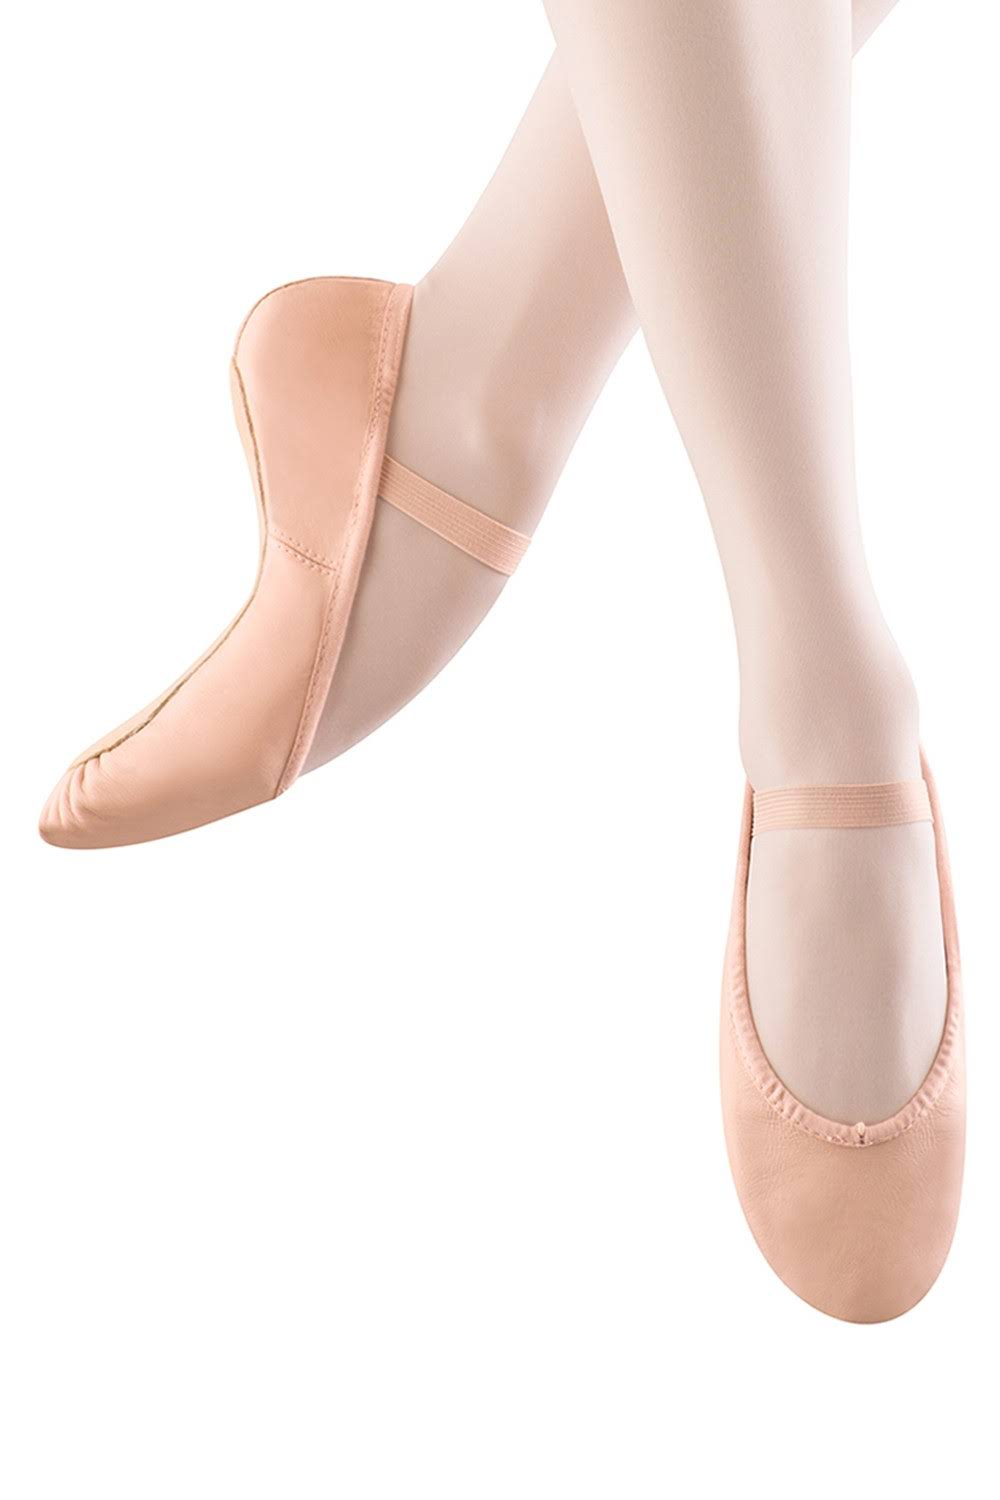 Bloch Dance Dansoft Ballet Slipper - Pink, 13 US Little Kid